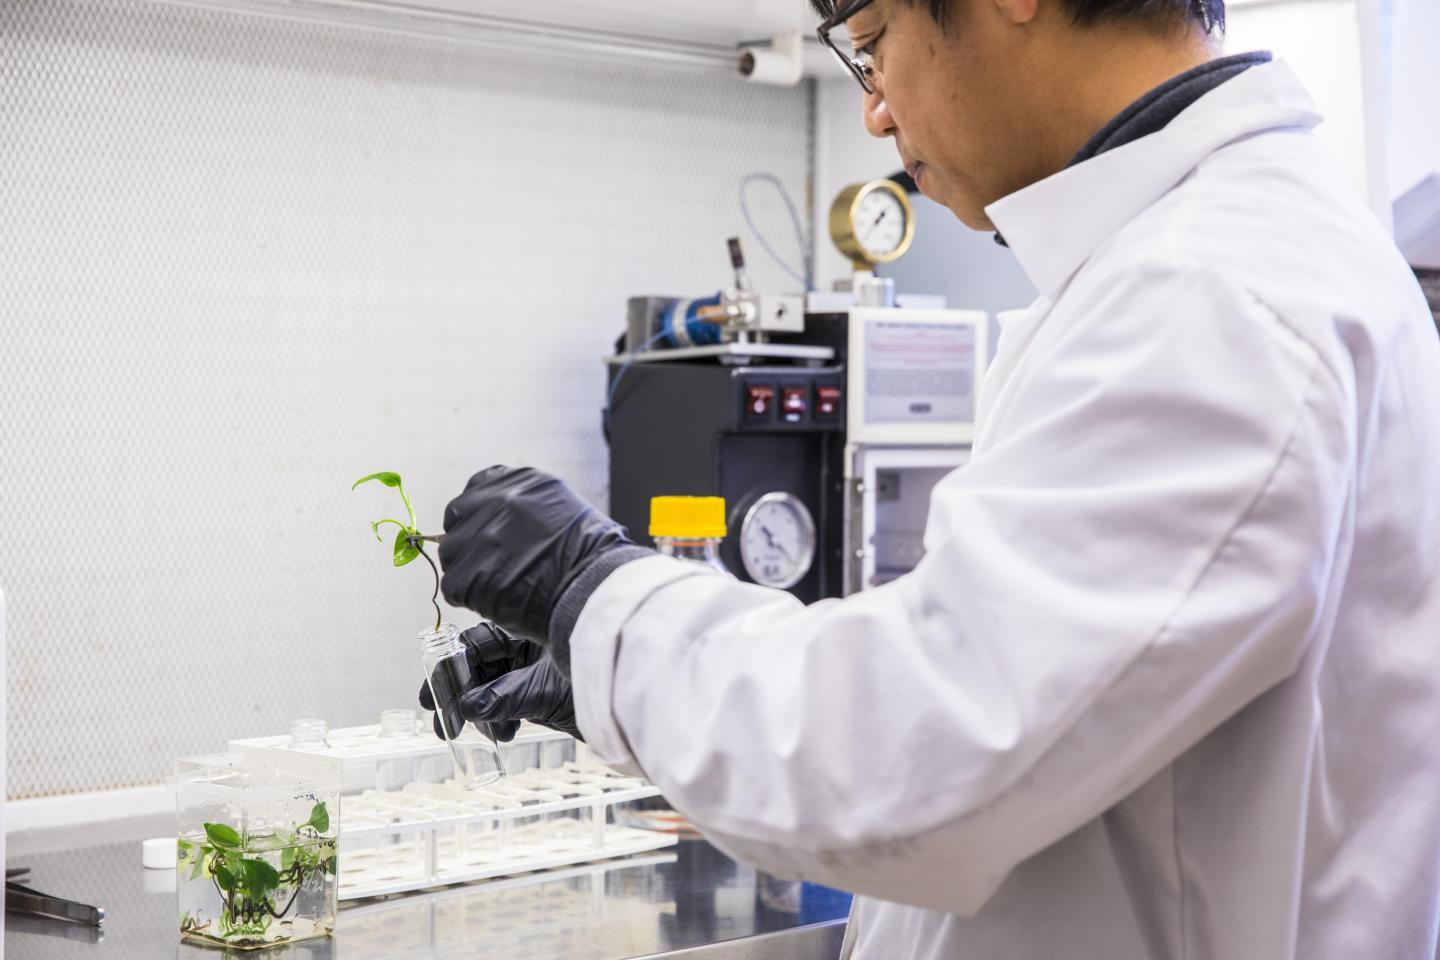 Research scientist Long Zhang puts a pothos ivy plant into a glass tube to test its ability to break down benzene or chloroform